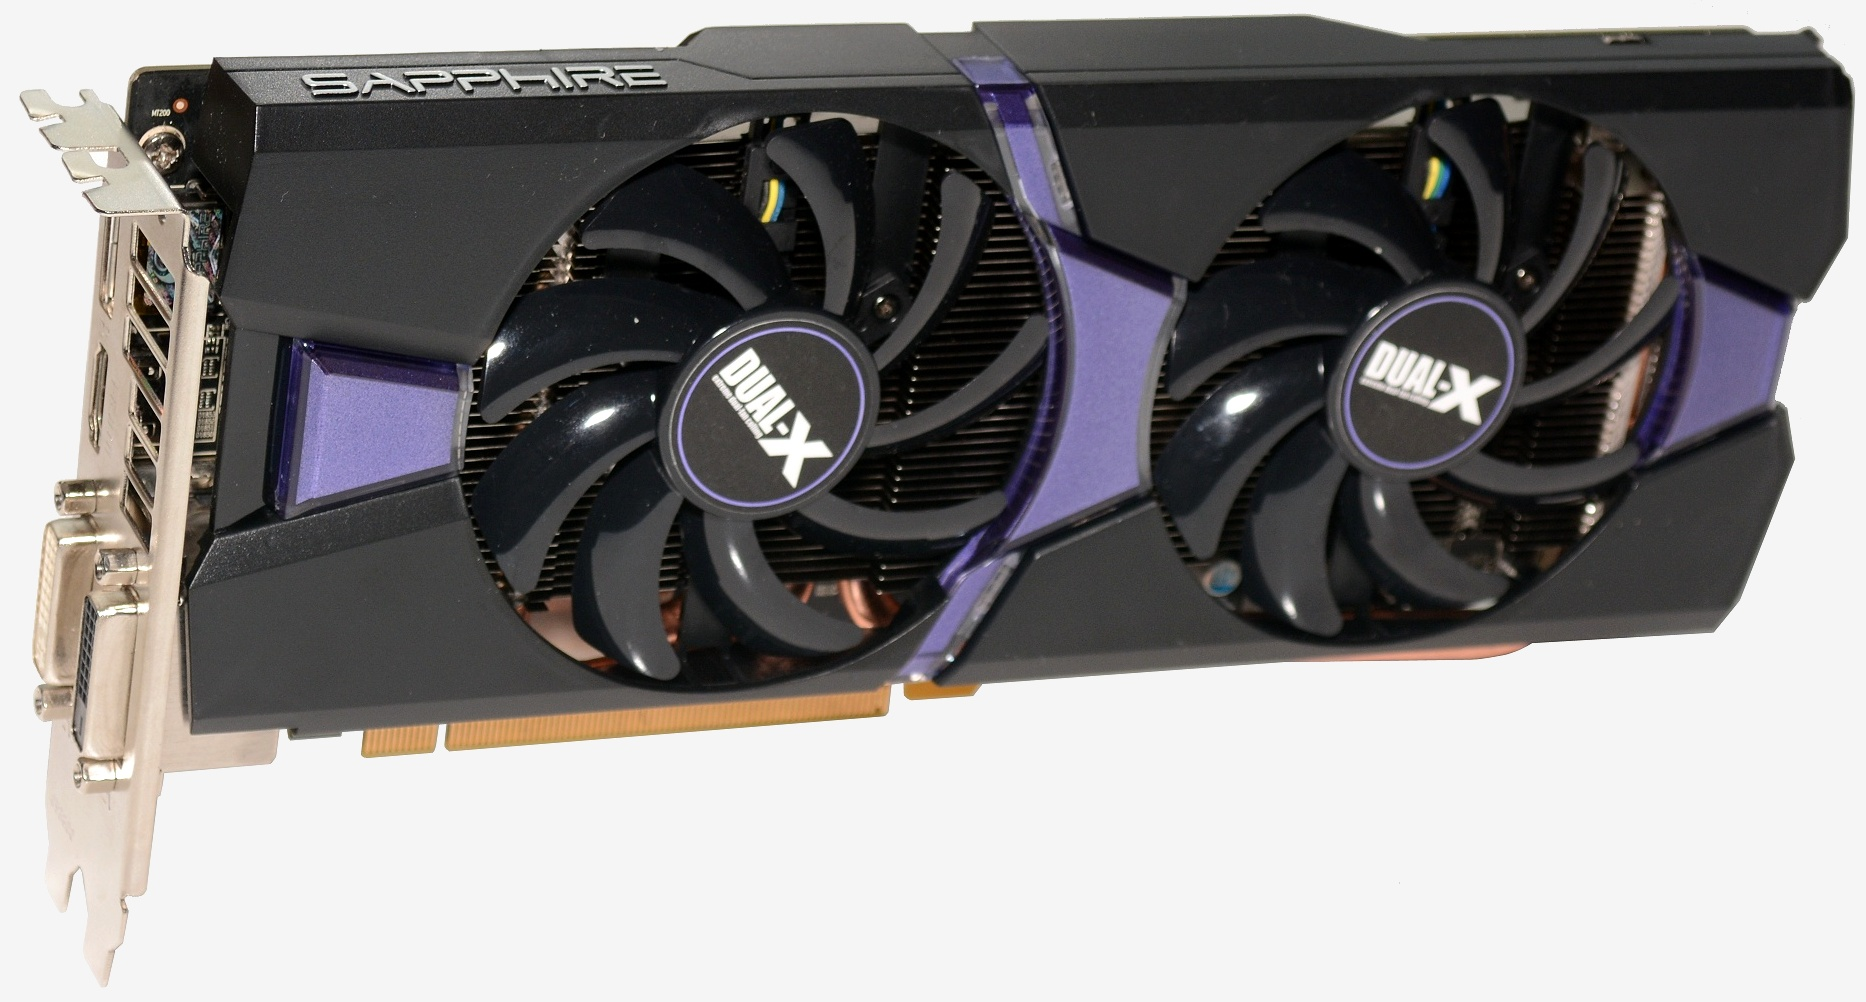 Amd Radeon R9 285 Review The New 250 Card To Beat